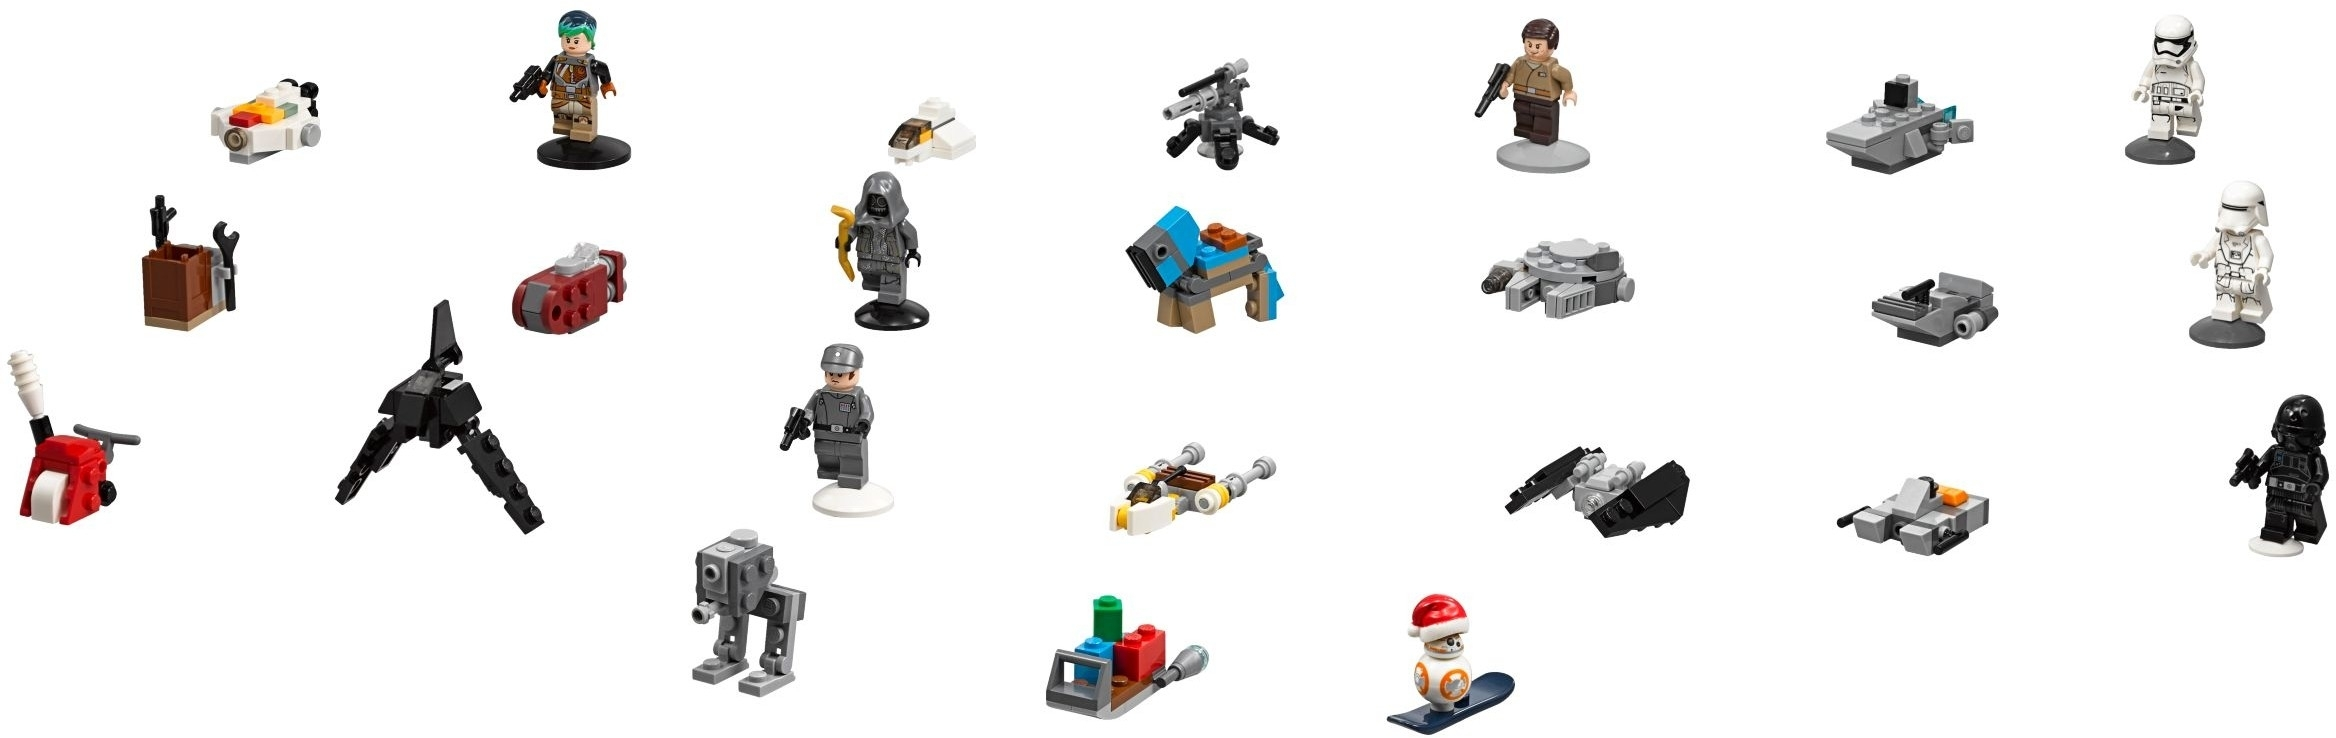 Lego 75184 Star Wars Advent Calendar Instructions, Star Wars intended for Are There Instructions For The Lego Star Wars Advent Calendar